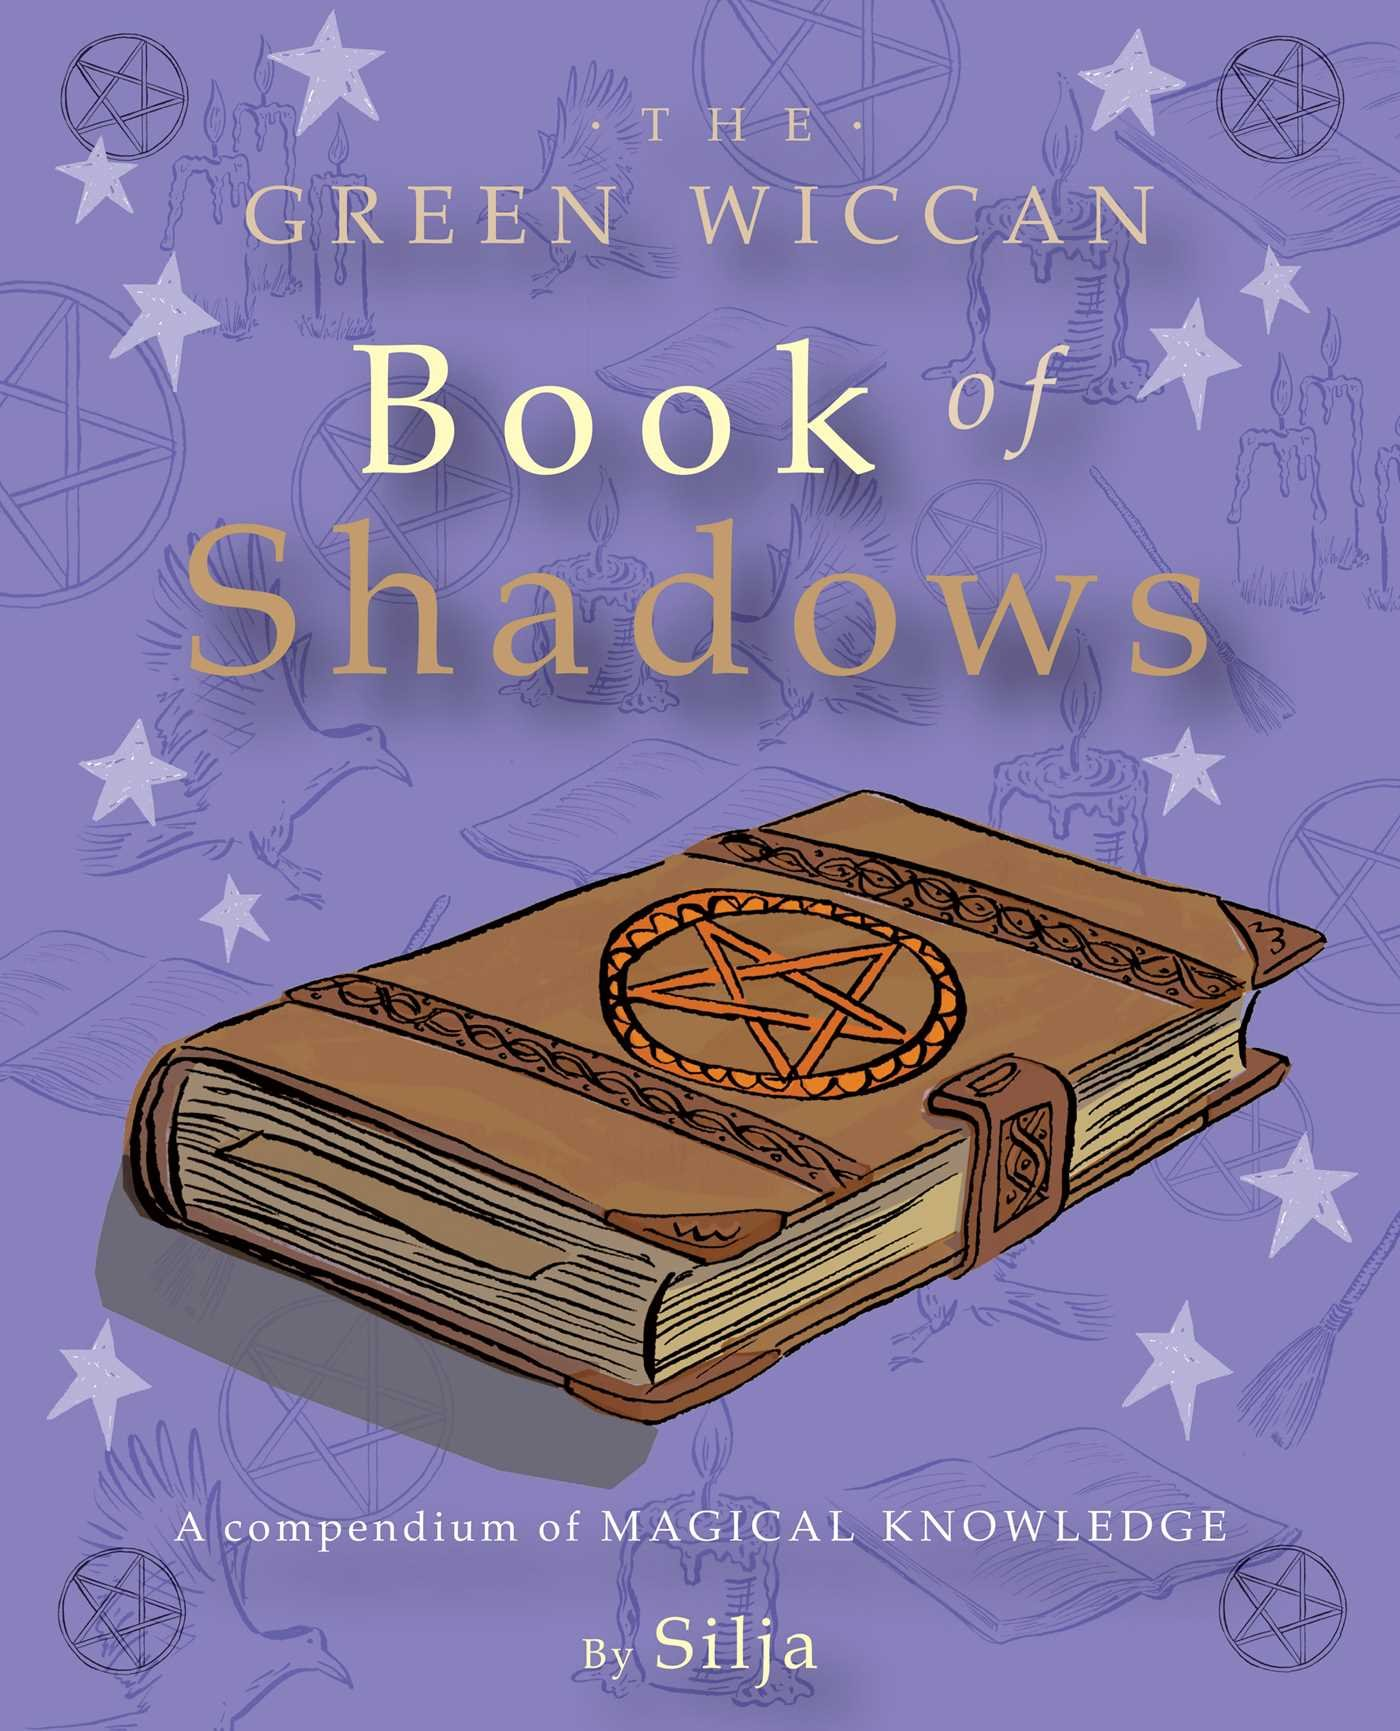 The Green Wiccan Book Of Shadows: Apendium Of Magical Knowledge